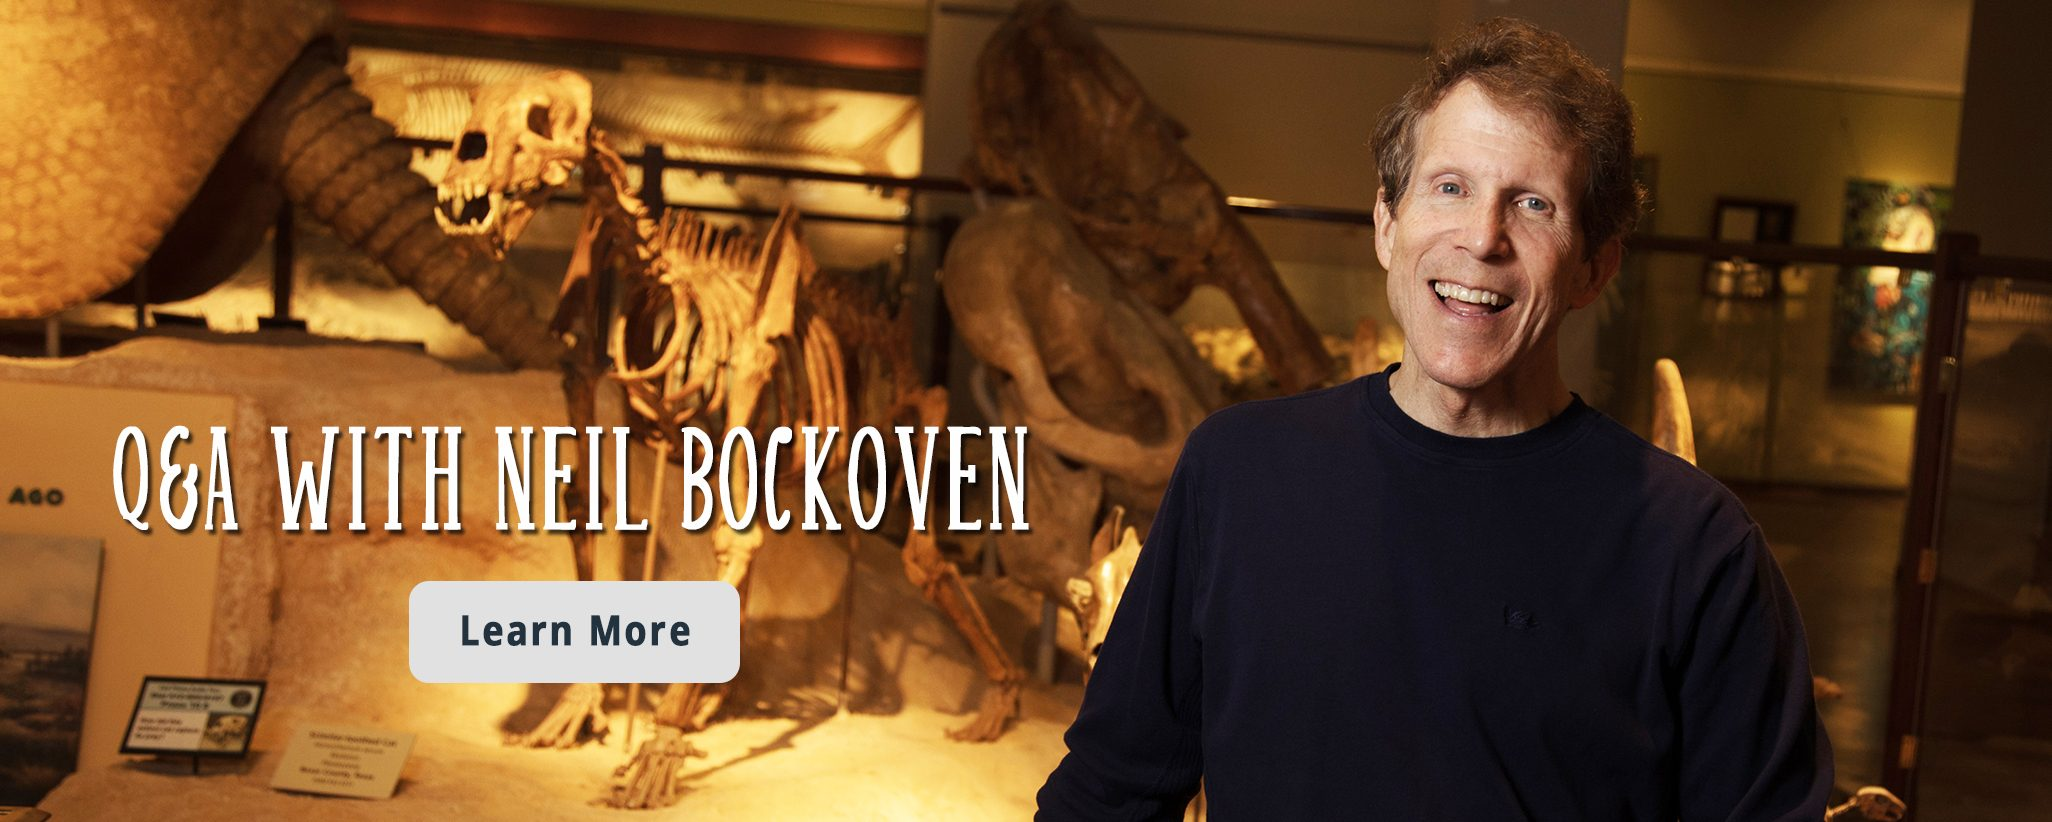 Q&A with Neil Bockoven